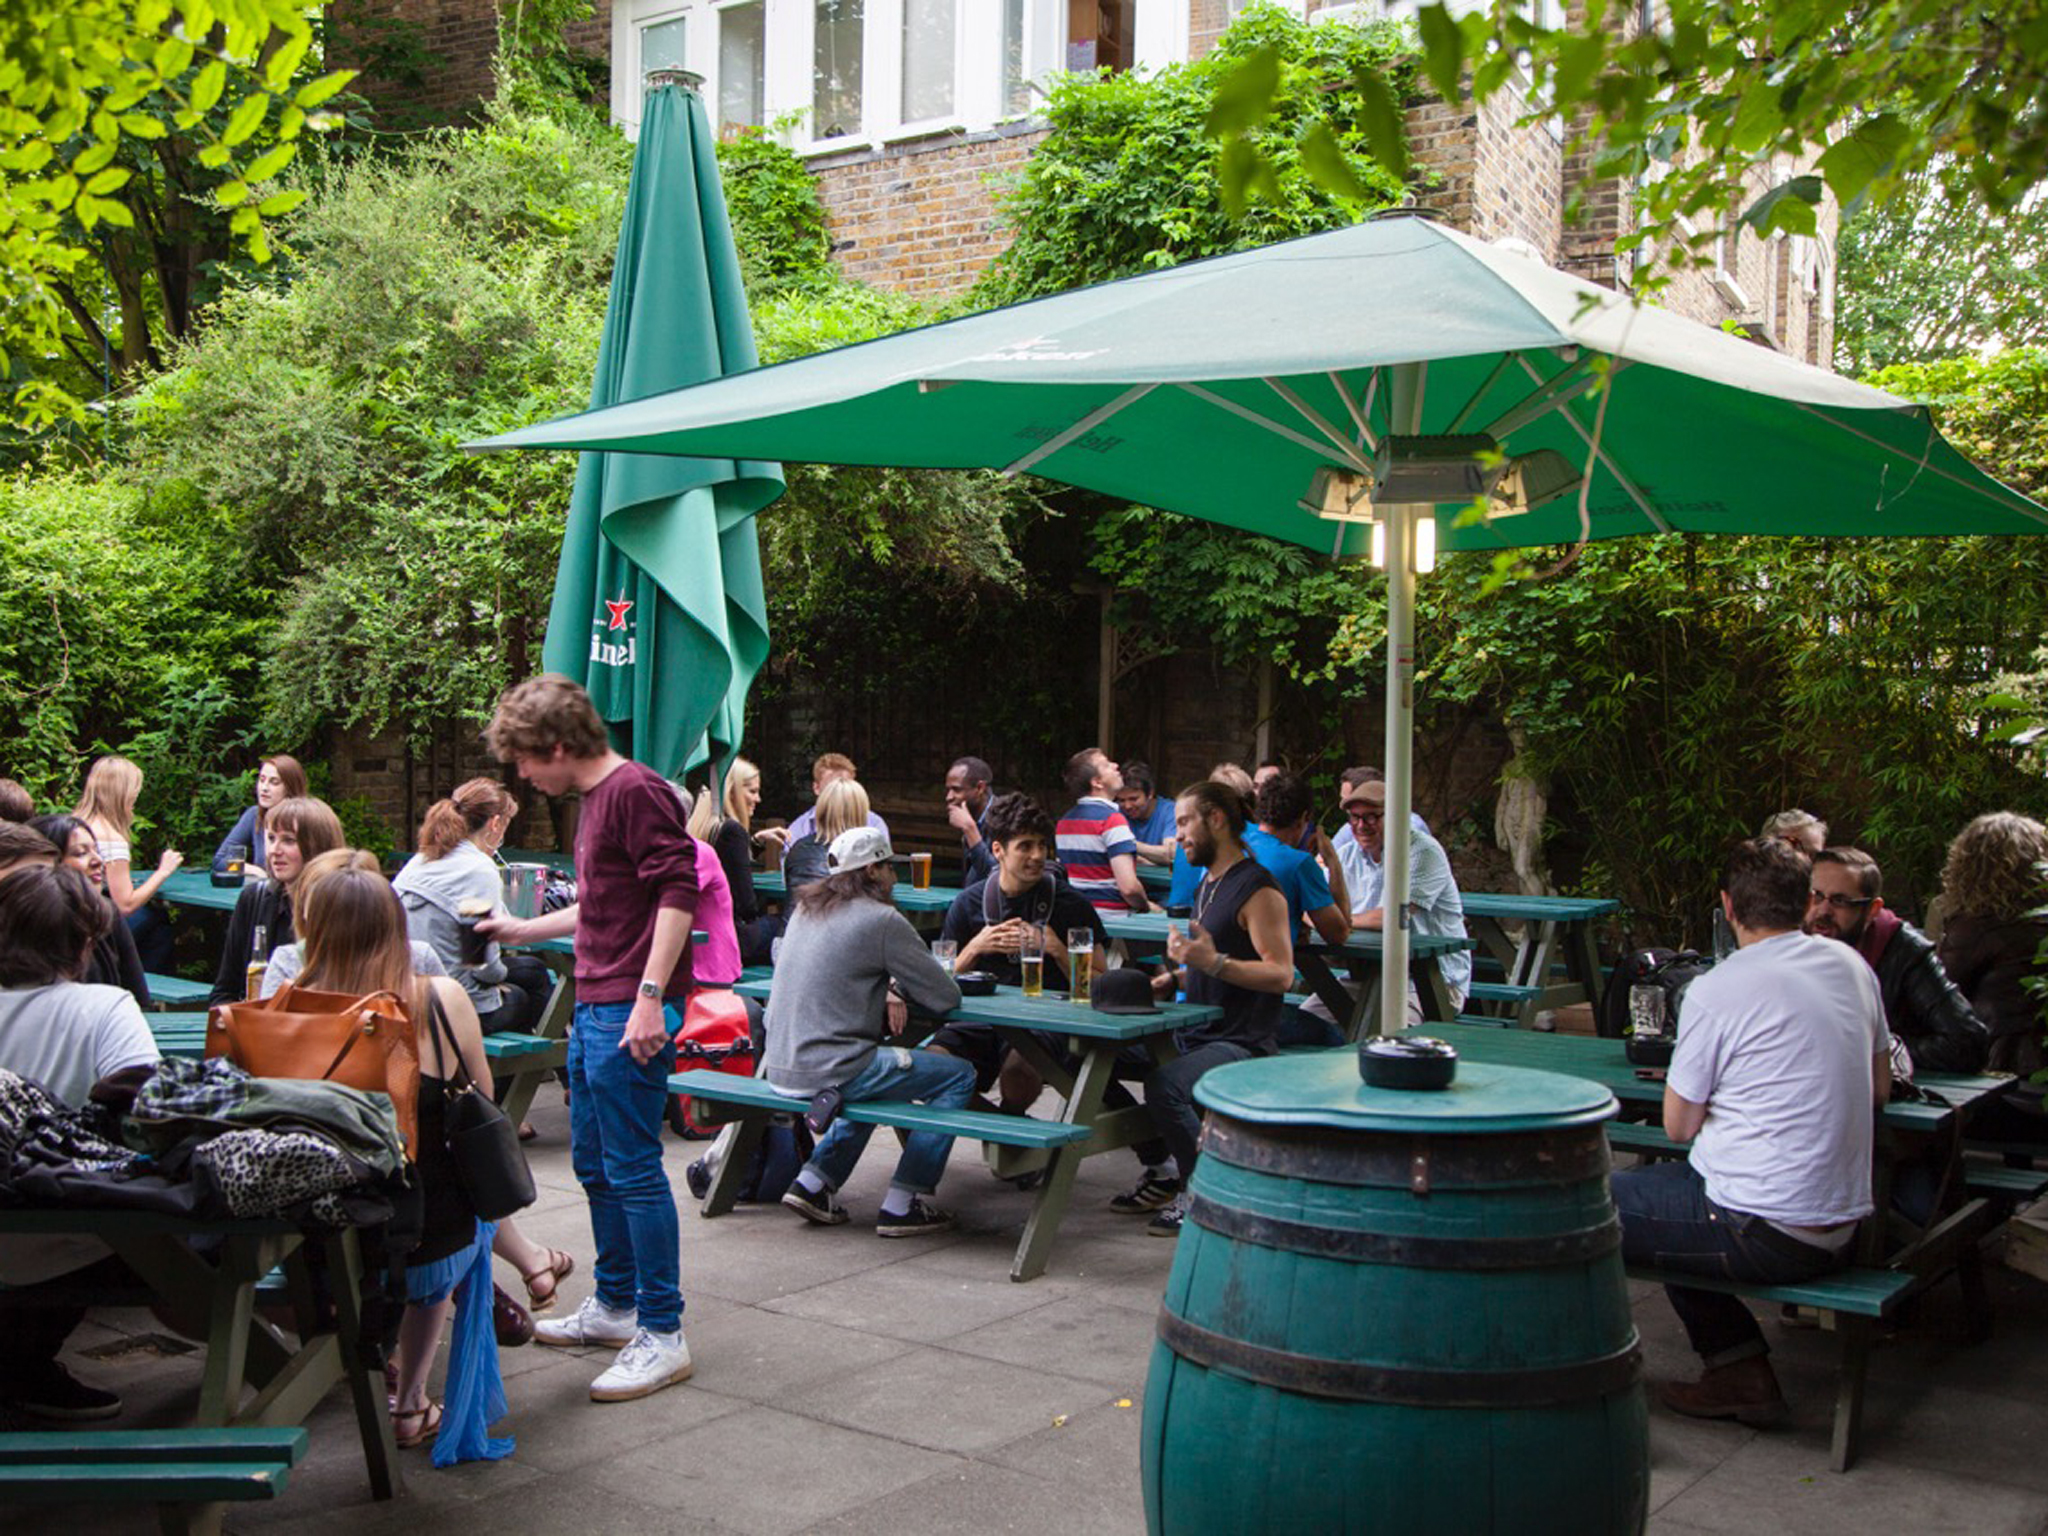 Top beer gardens in London